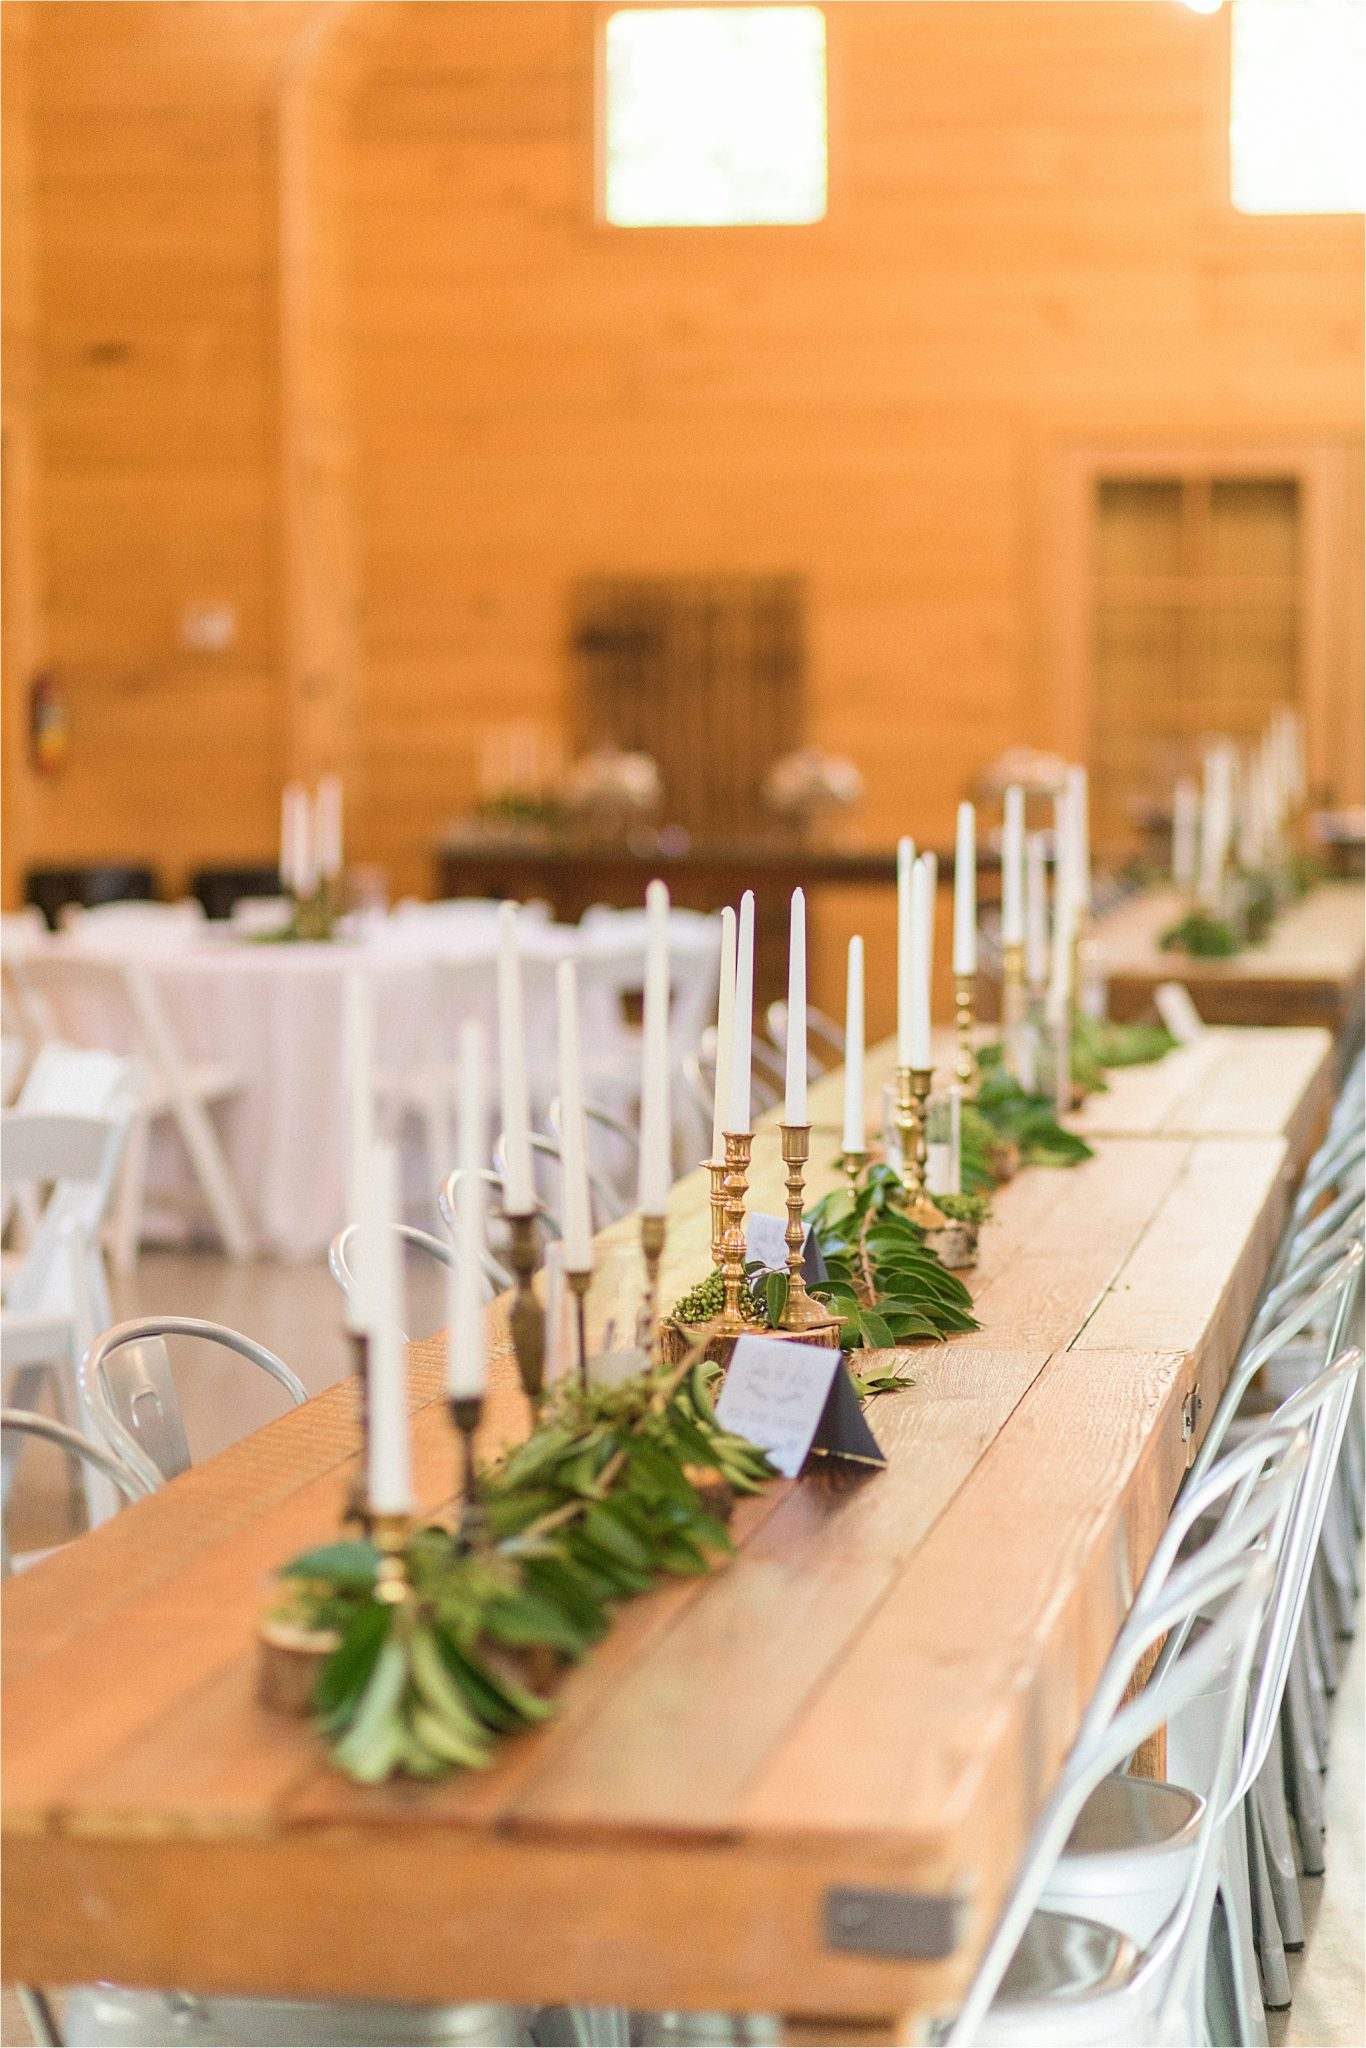 wedding-reception-alabama-venue-barn-farm-tables-metal-chairs-candle-centerpieces-gold-candlesticks